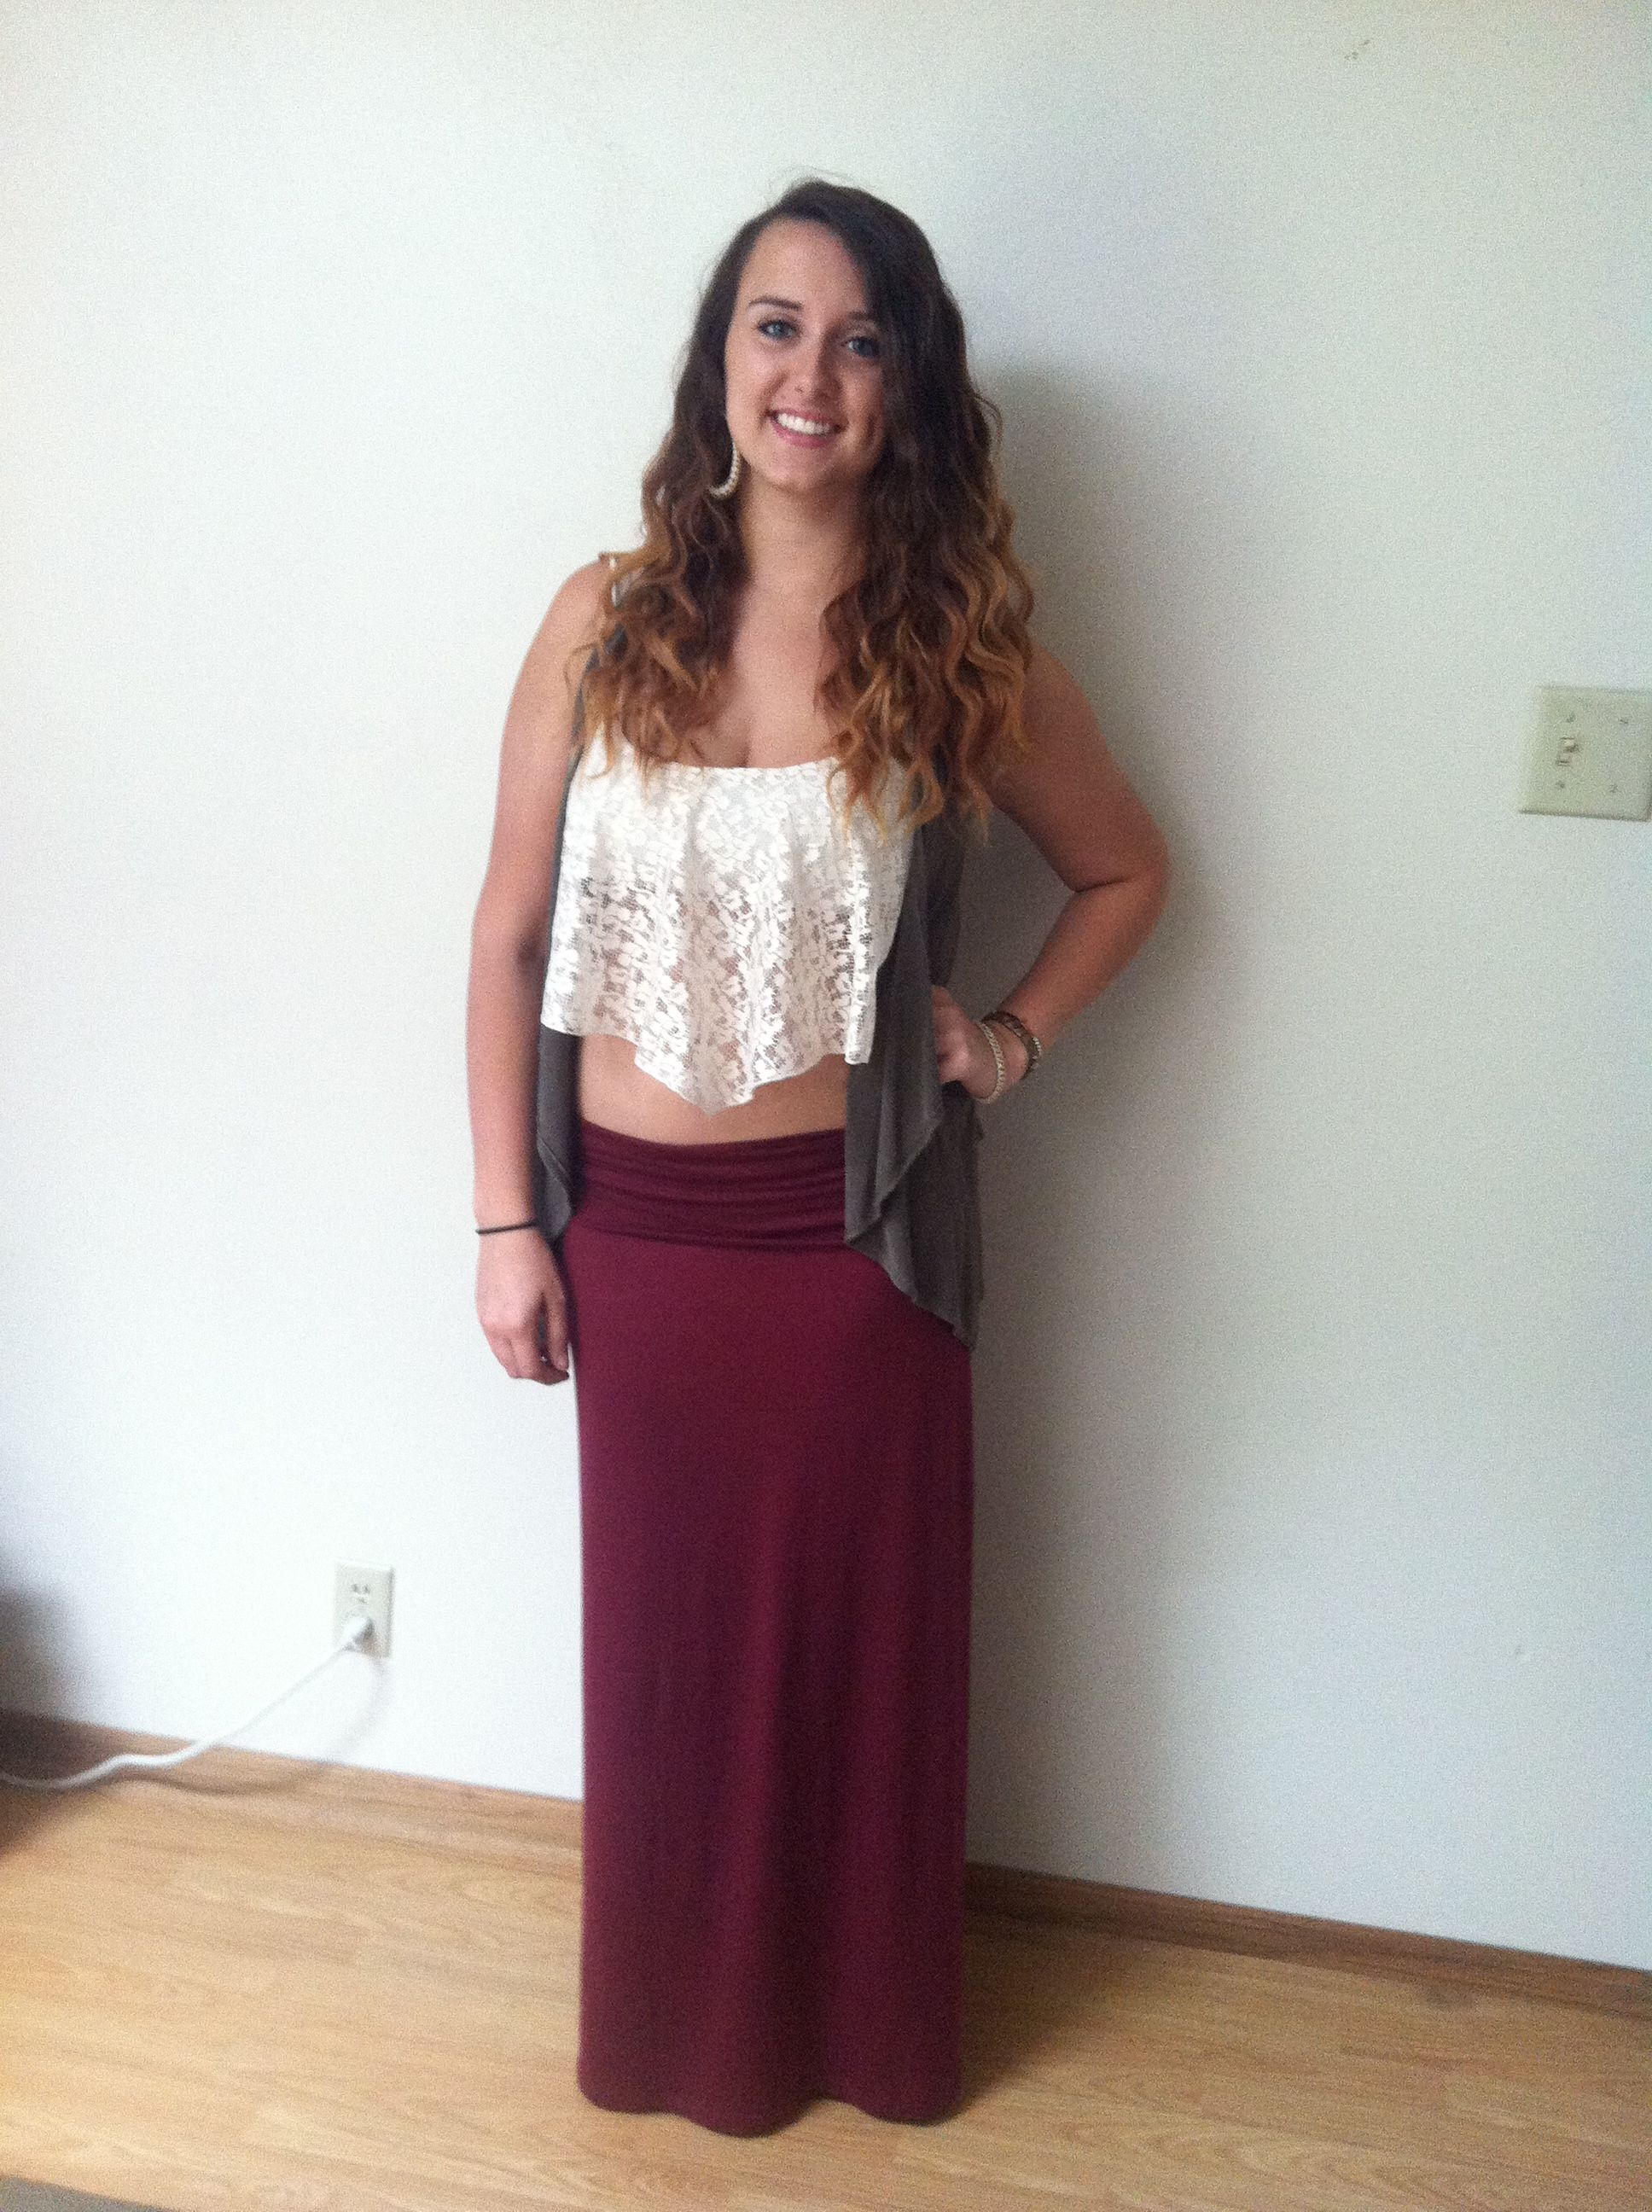 The New Outfit I Wore For My Big Time Rush Concert Meet And Greet